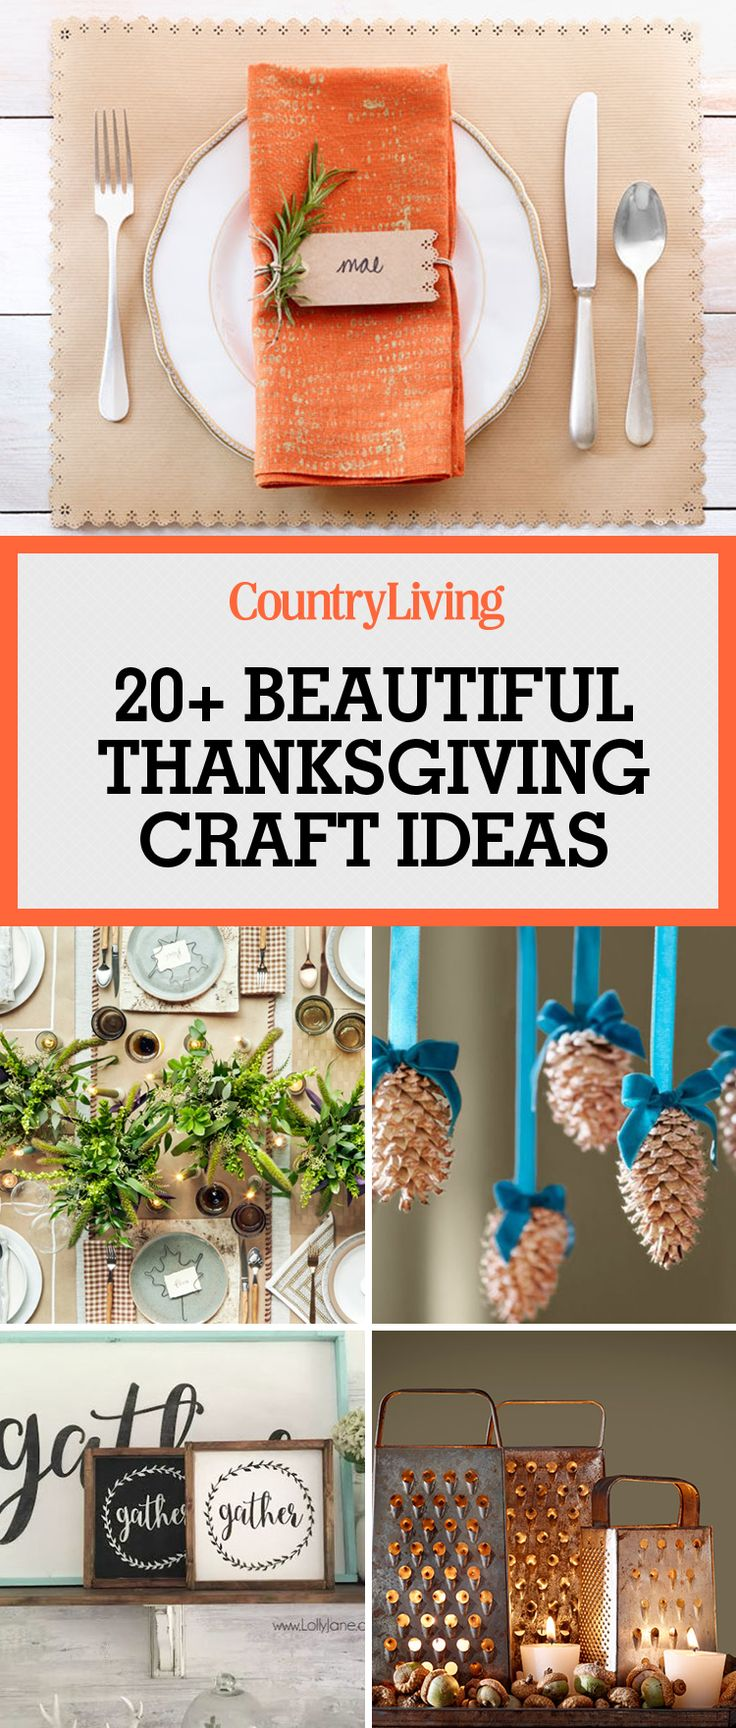 380 best thanksgiving decorating ideas images on pinterest | apple